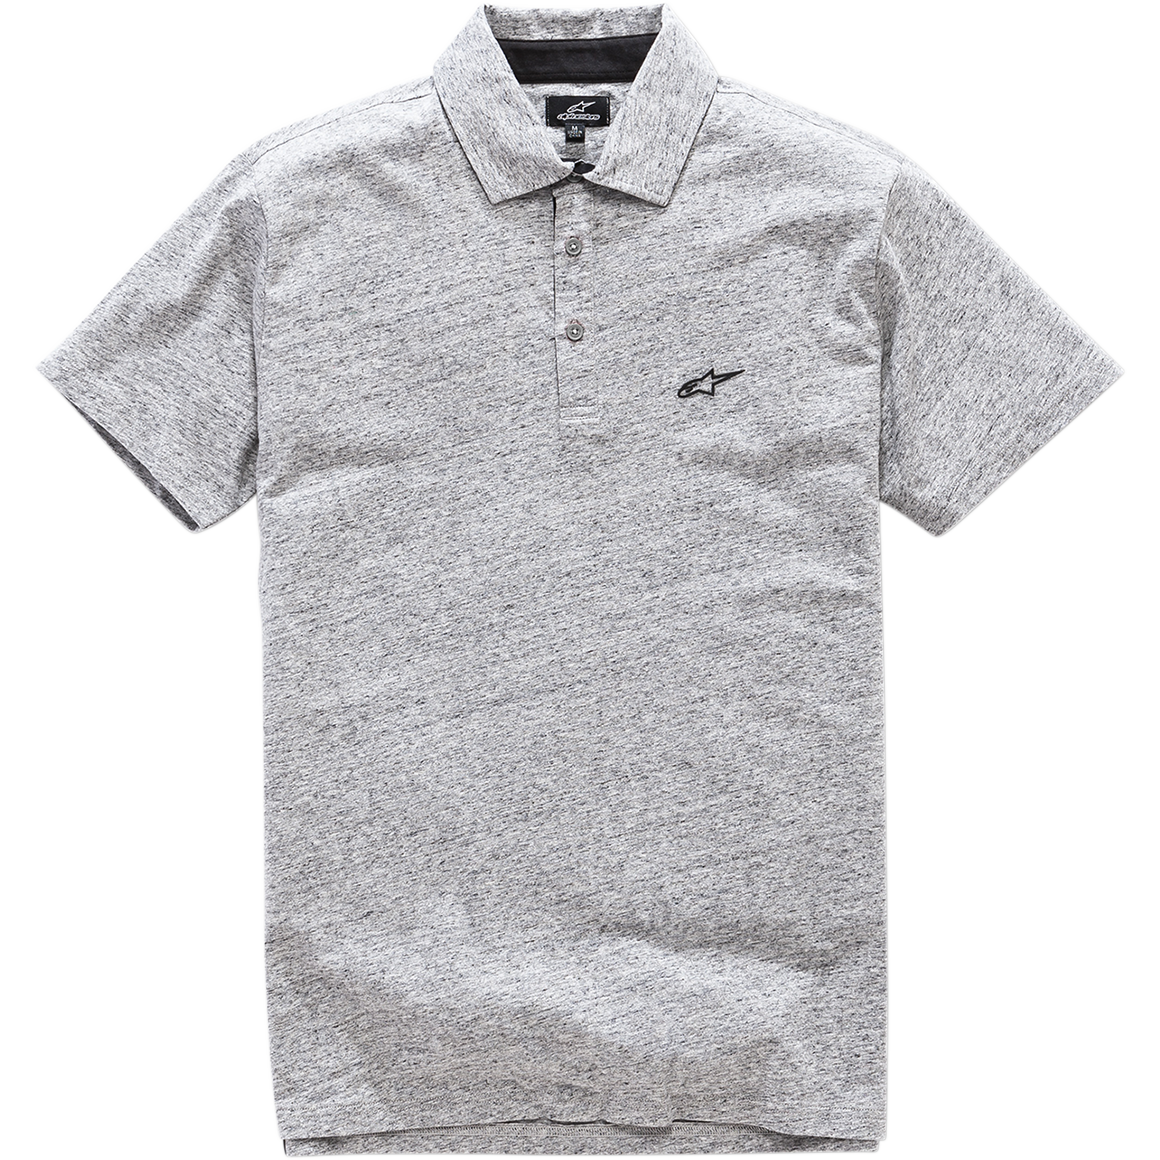 Eternal Polo Shirt